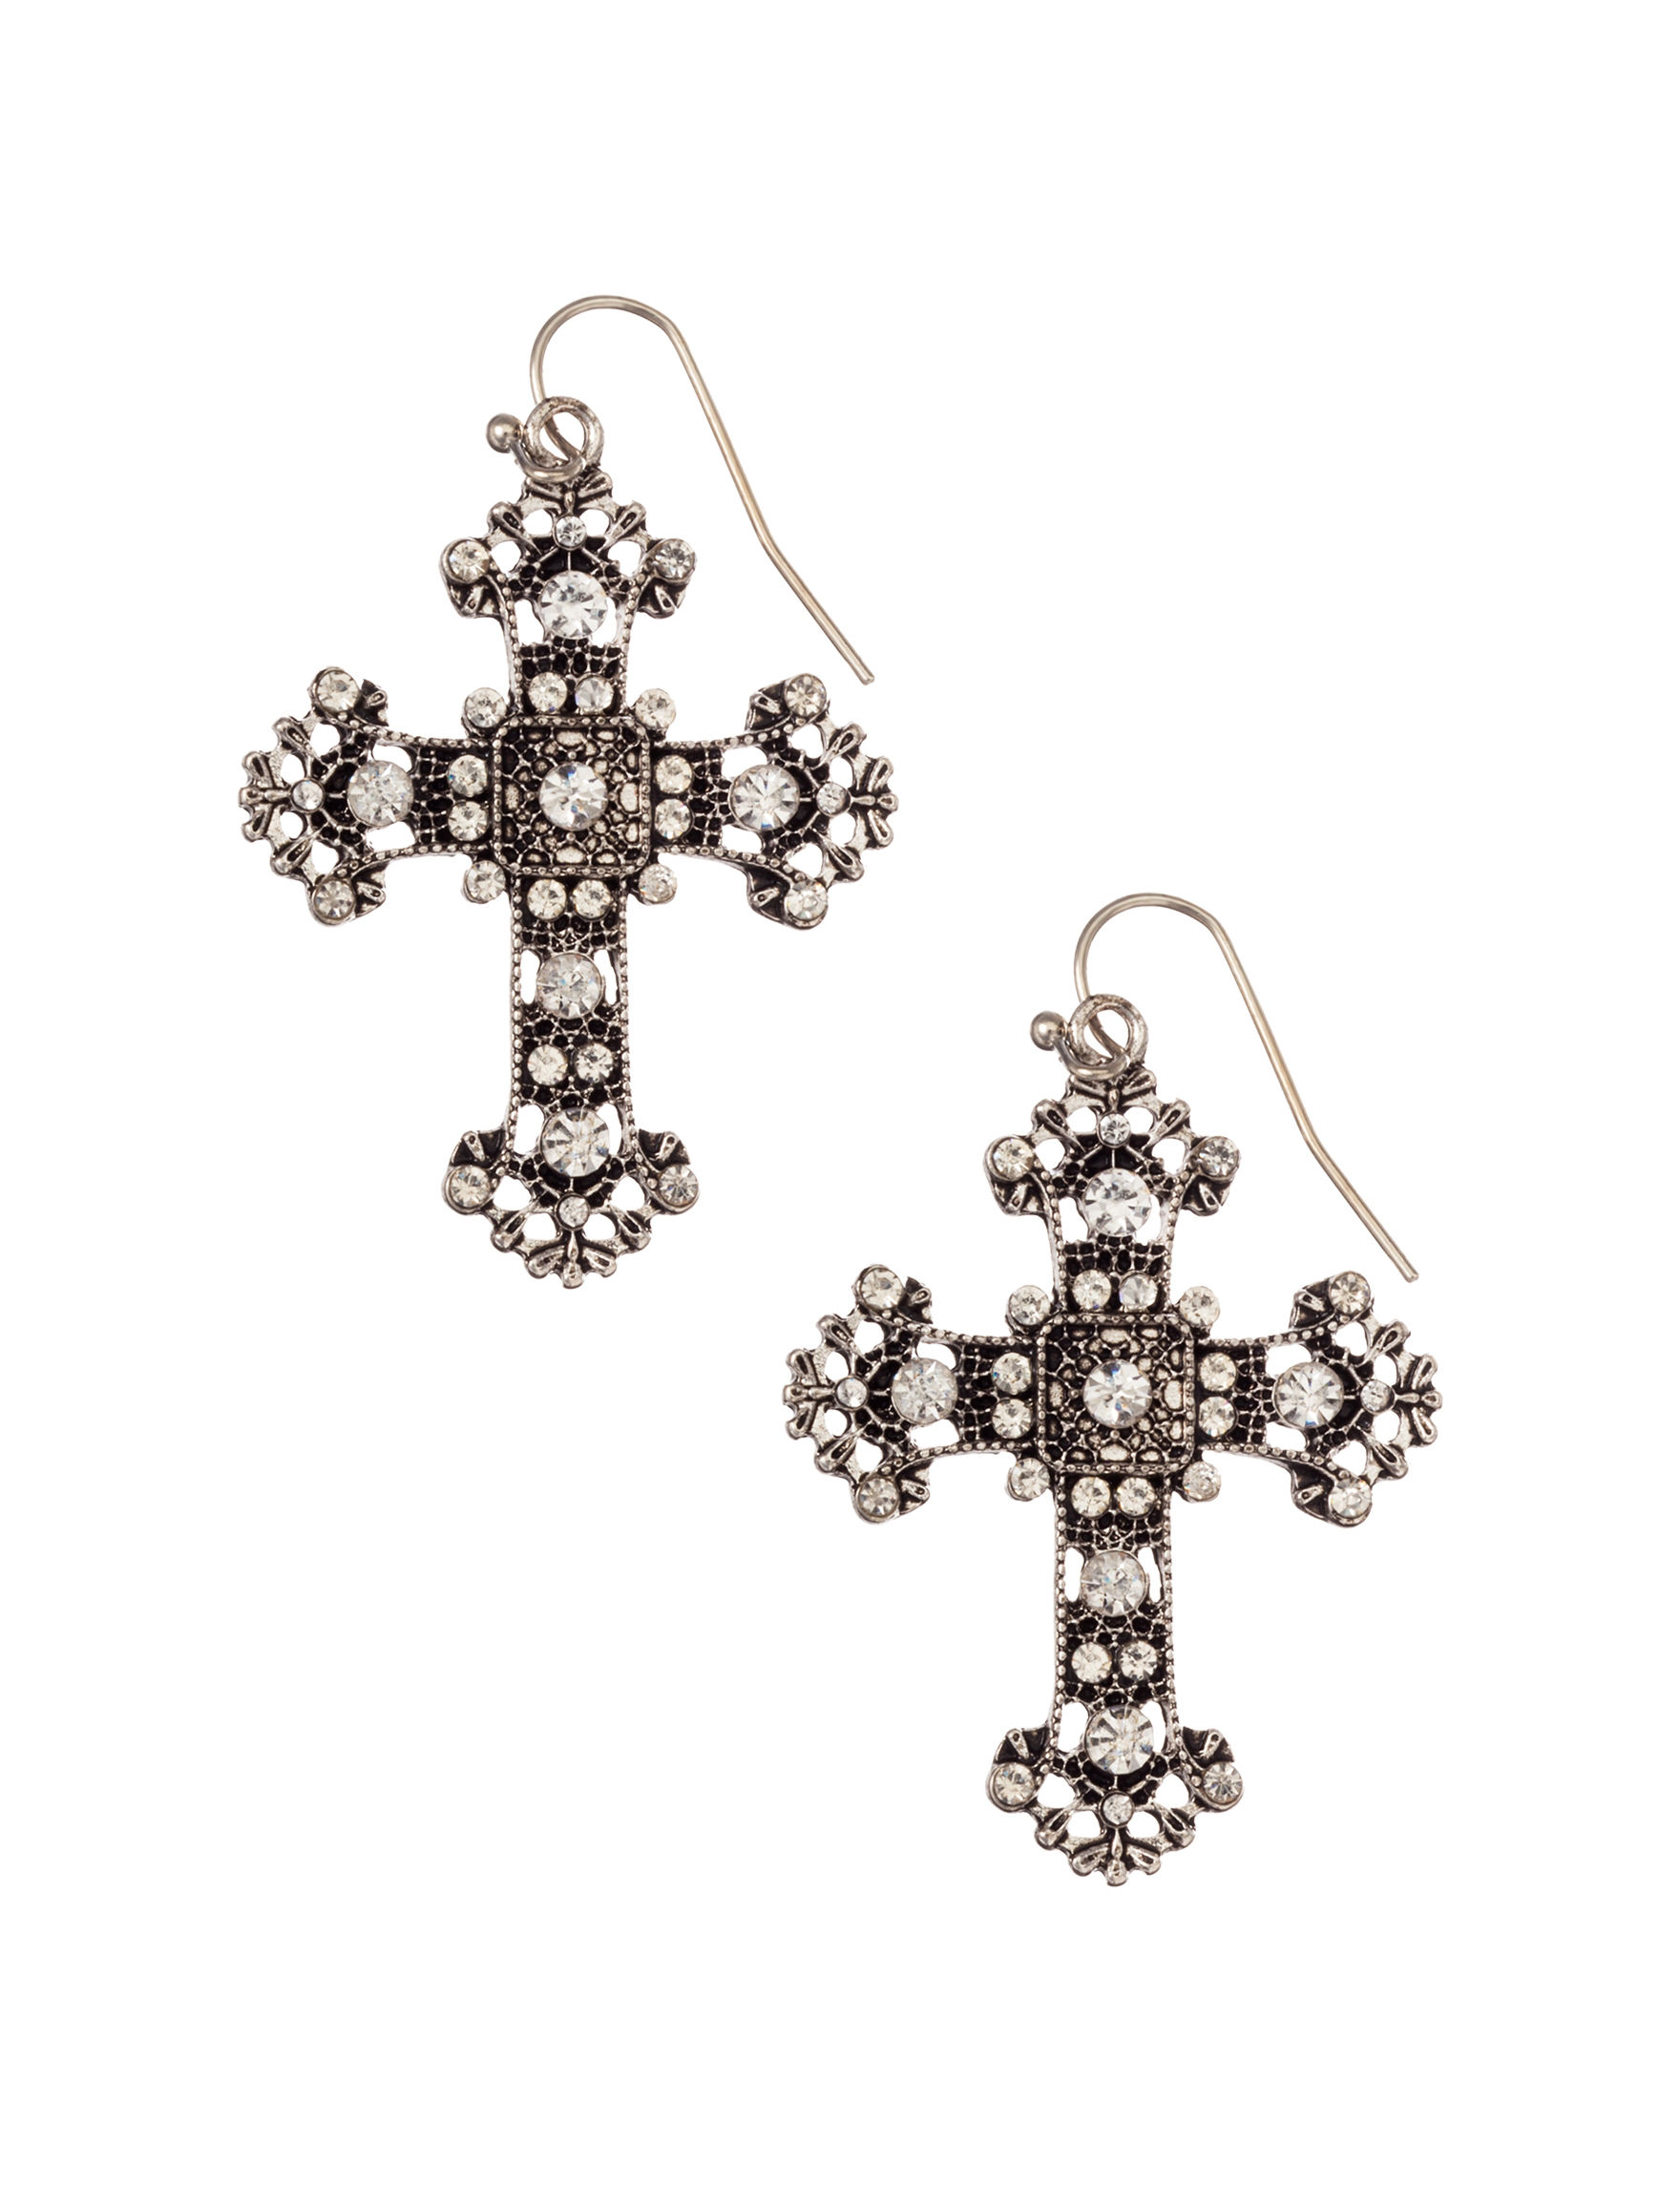 Hannah Antique Silver Drops Earrings Fashion Jewelry